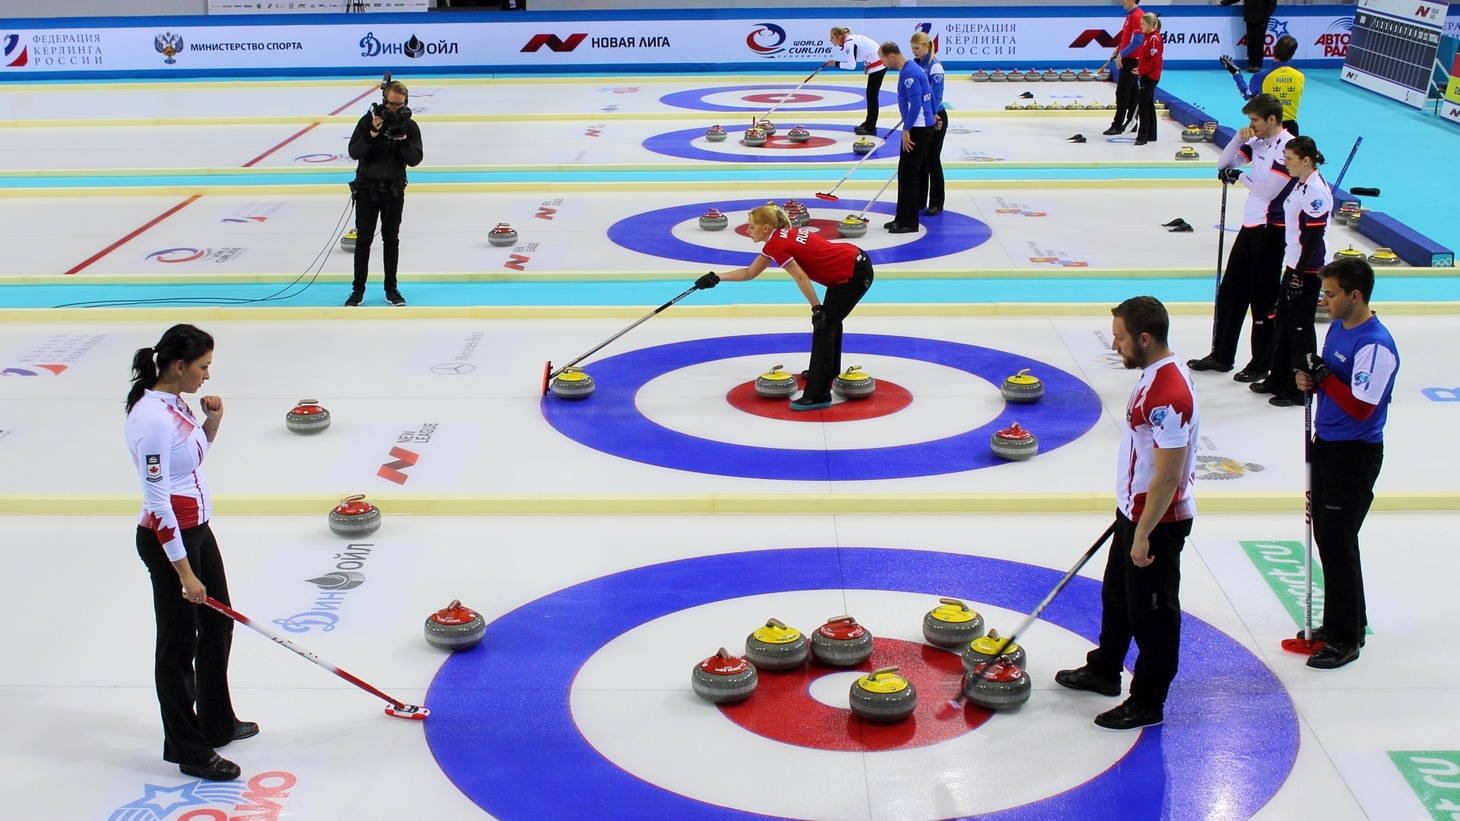 """Last night at the Latin Grammys, Mexican rockers unfurled a banner that said in Spanish """"Latinos united, don't vote for racists."""" And curlers everywhere are up in arms over their brooms. Curling the sport, that is."""